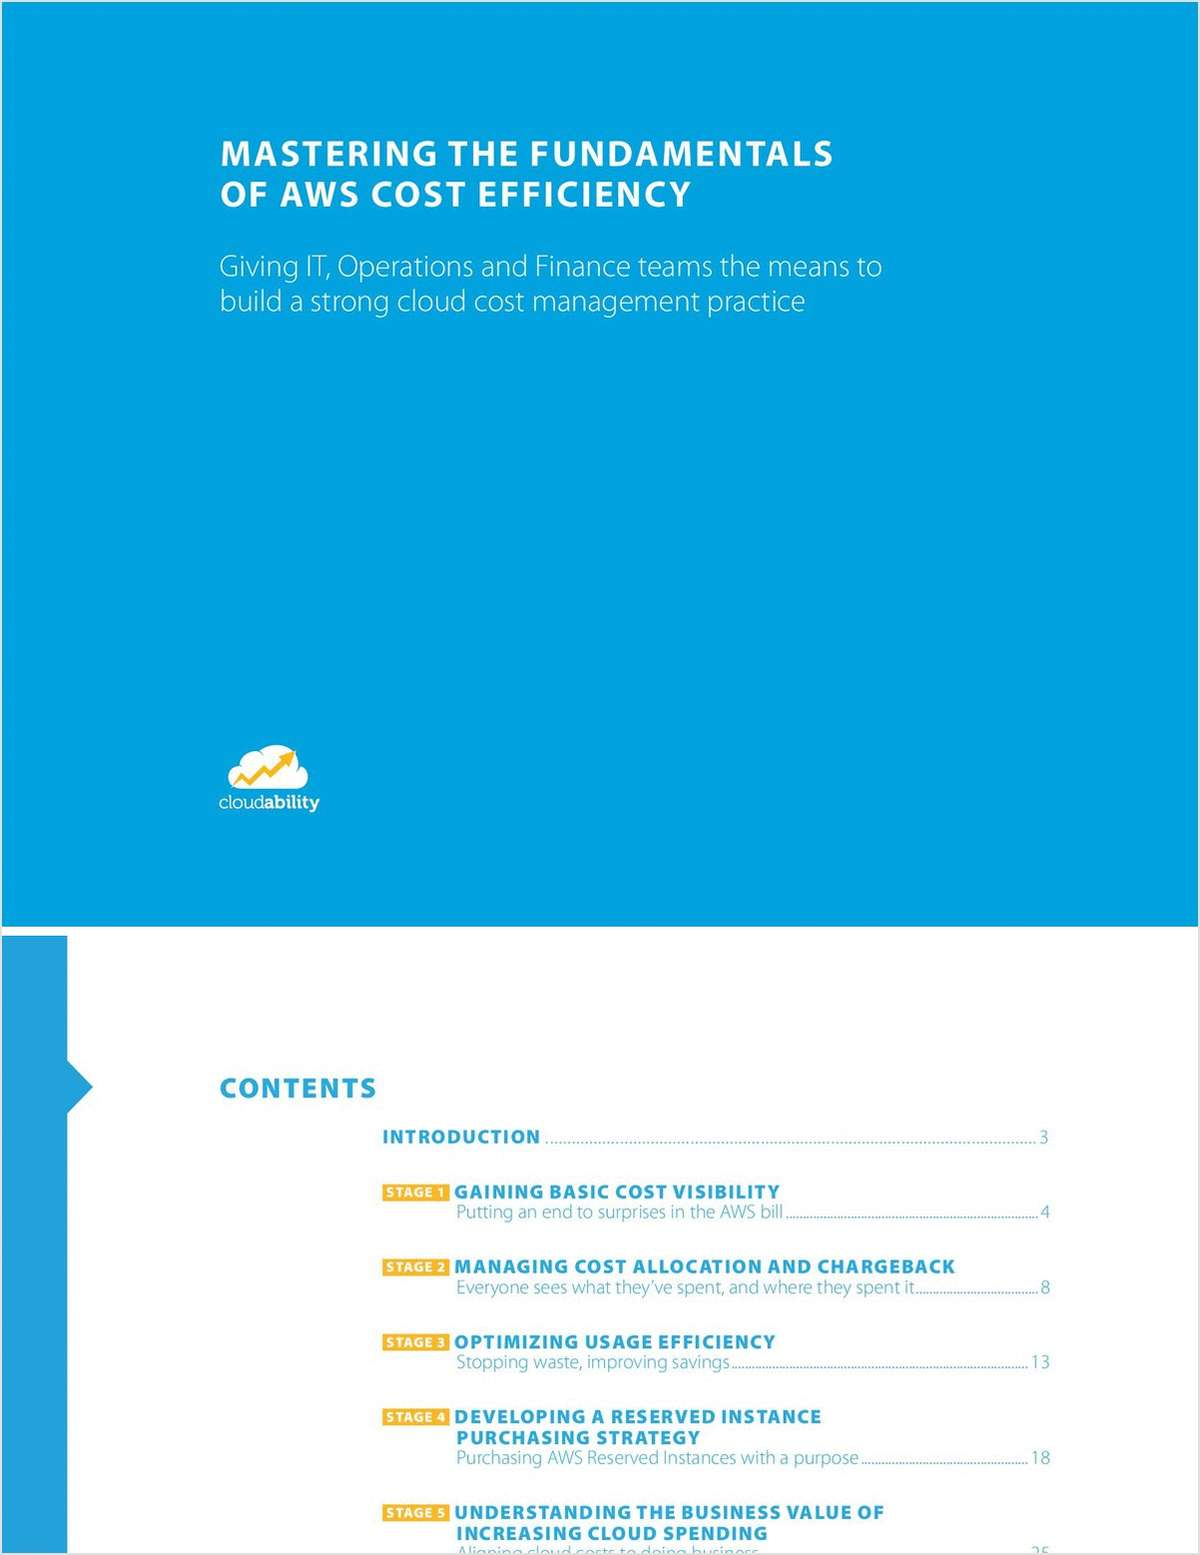 Mastering the Fundamentals of AWS Cost Efficiency